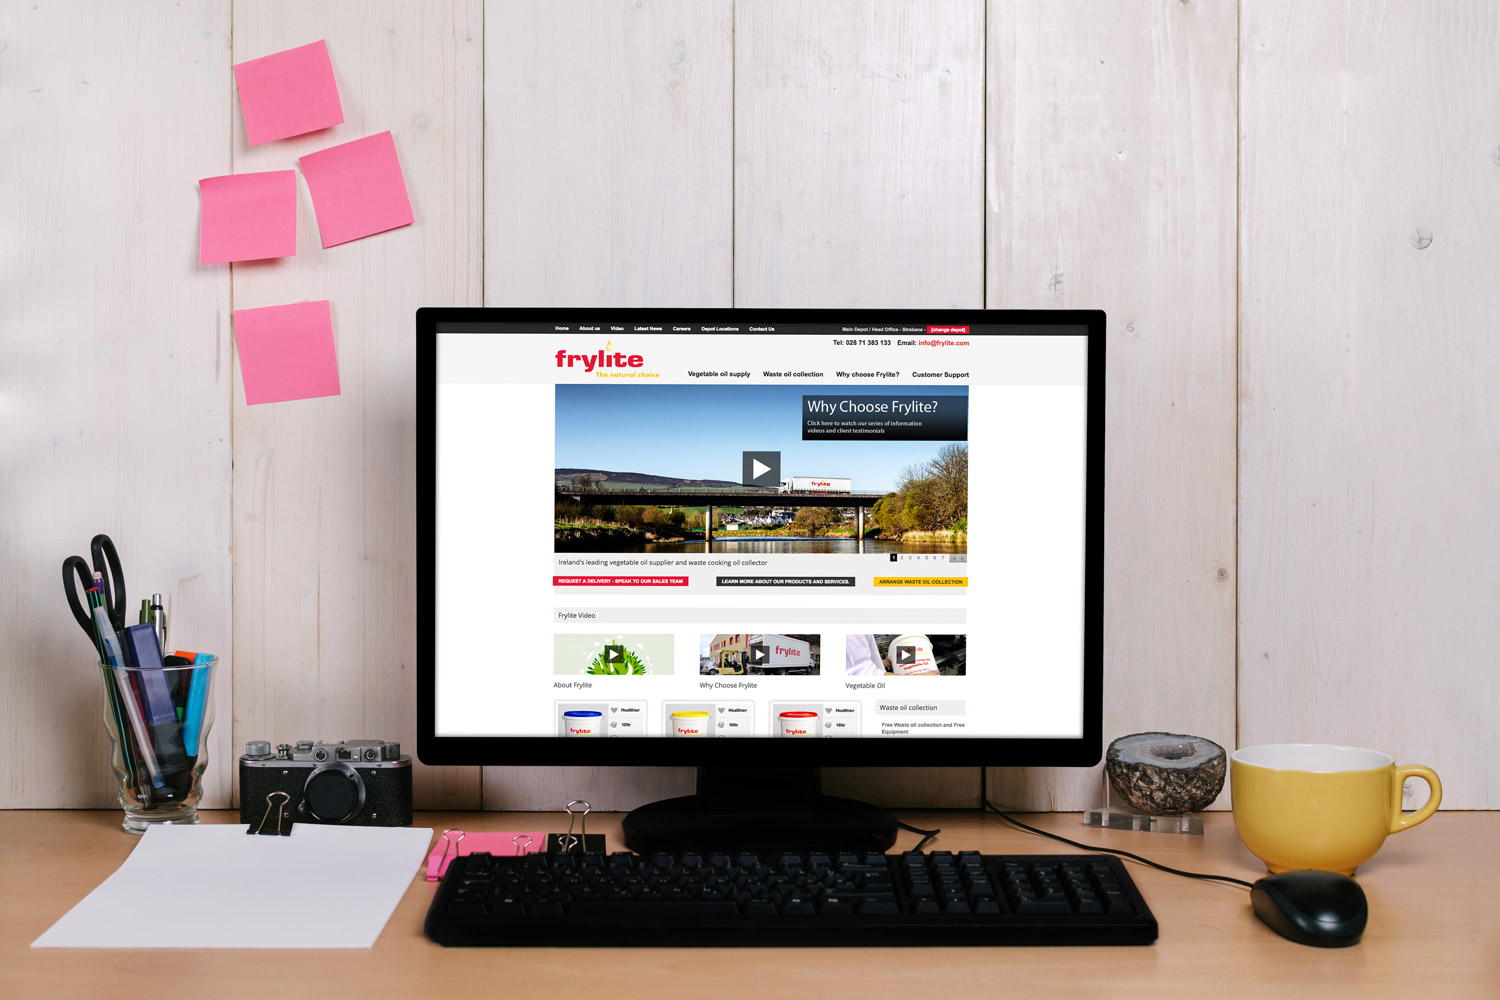 Frylite Website